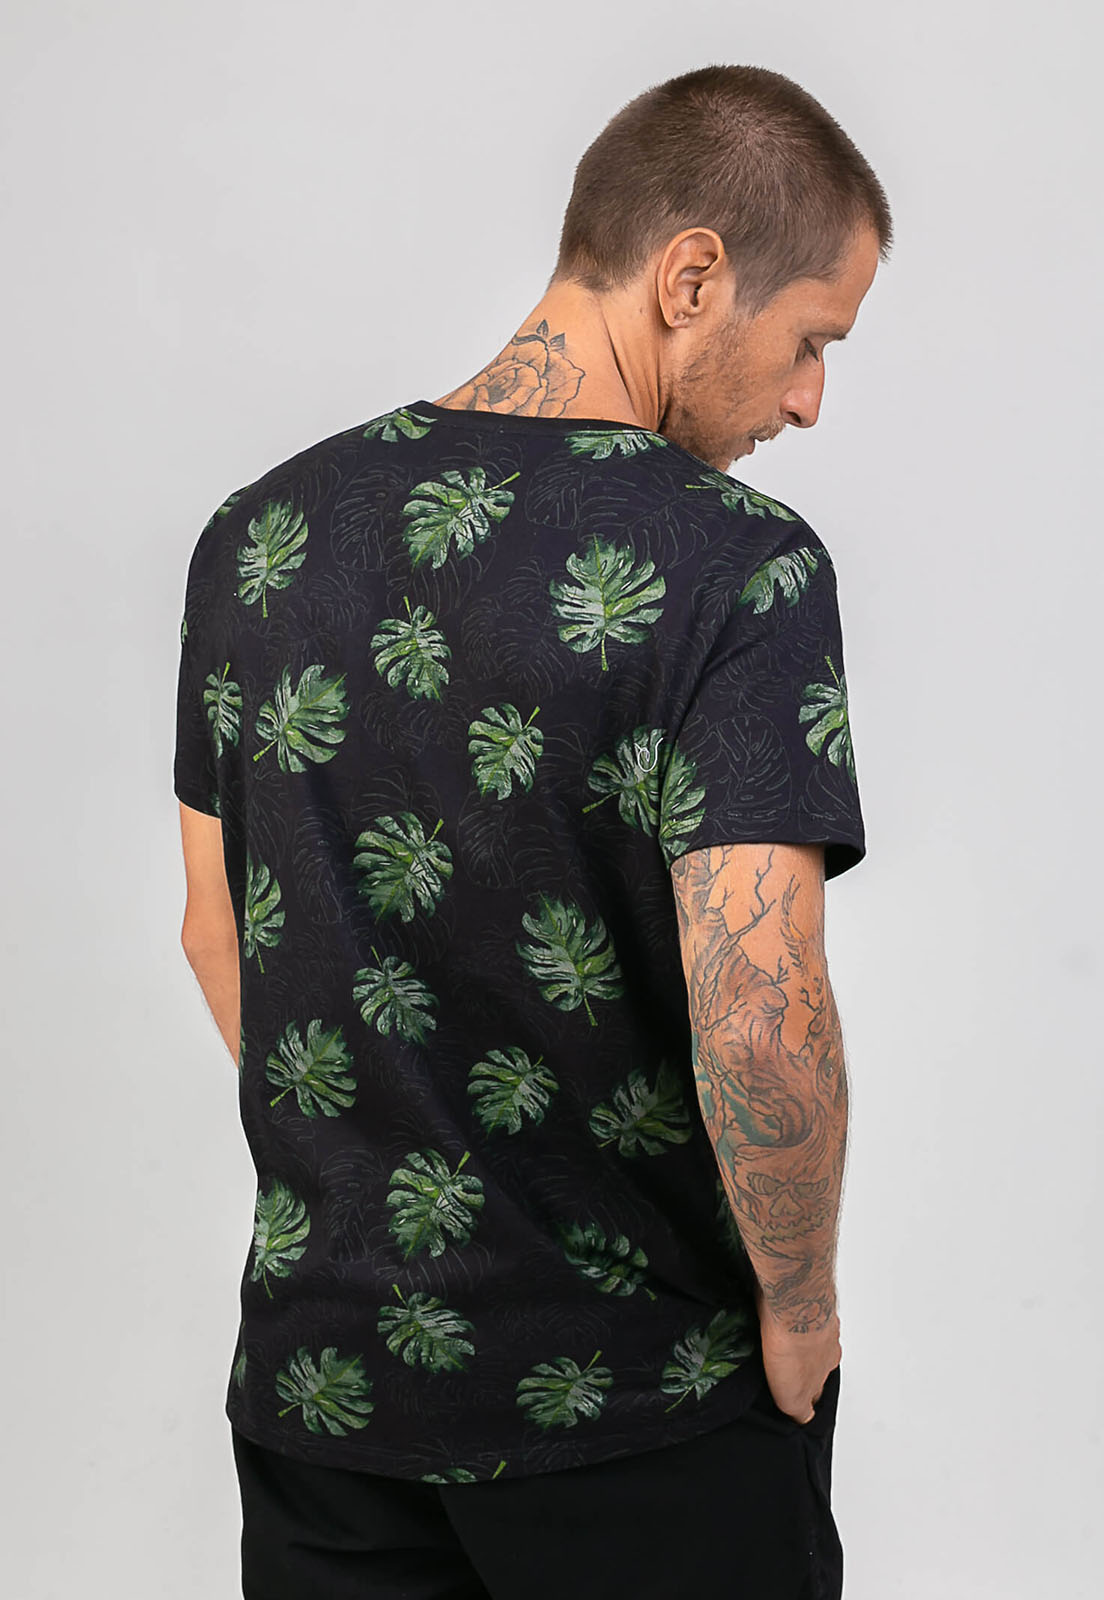 T-shirt Palm Springs melty